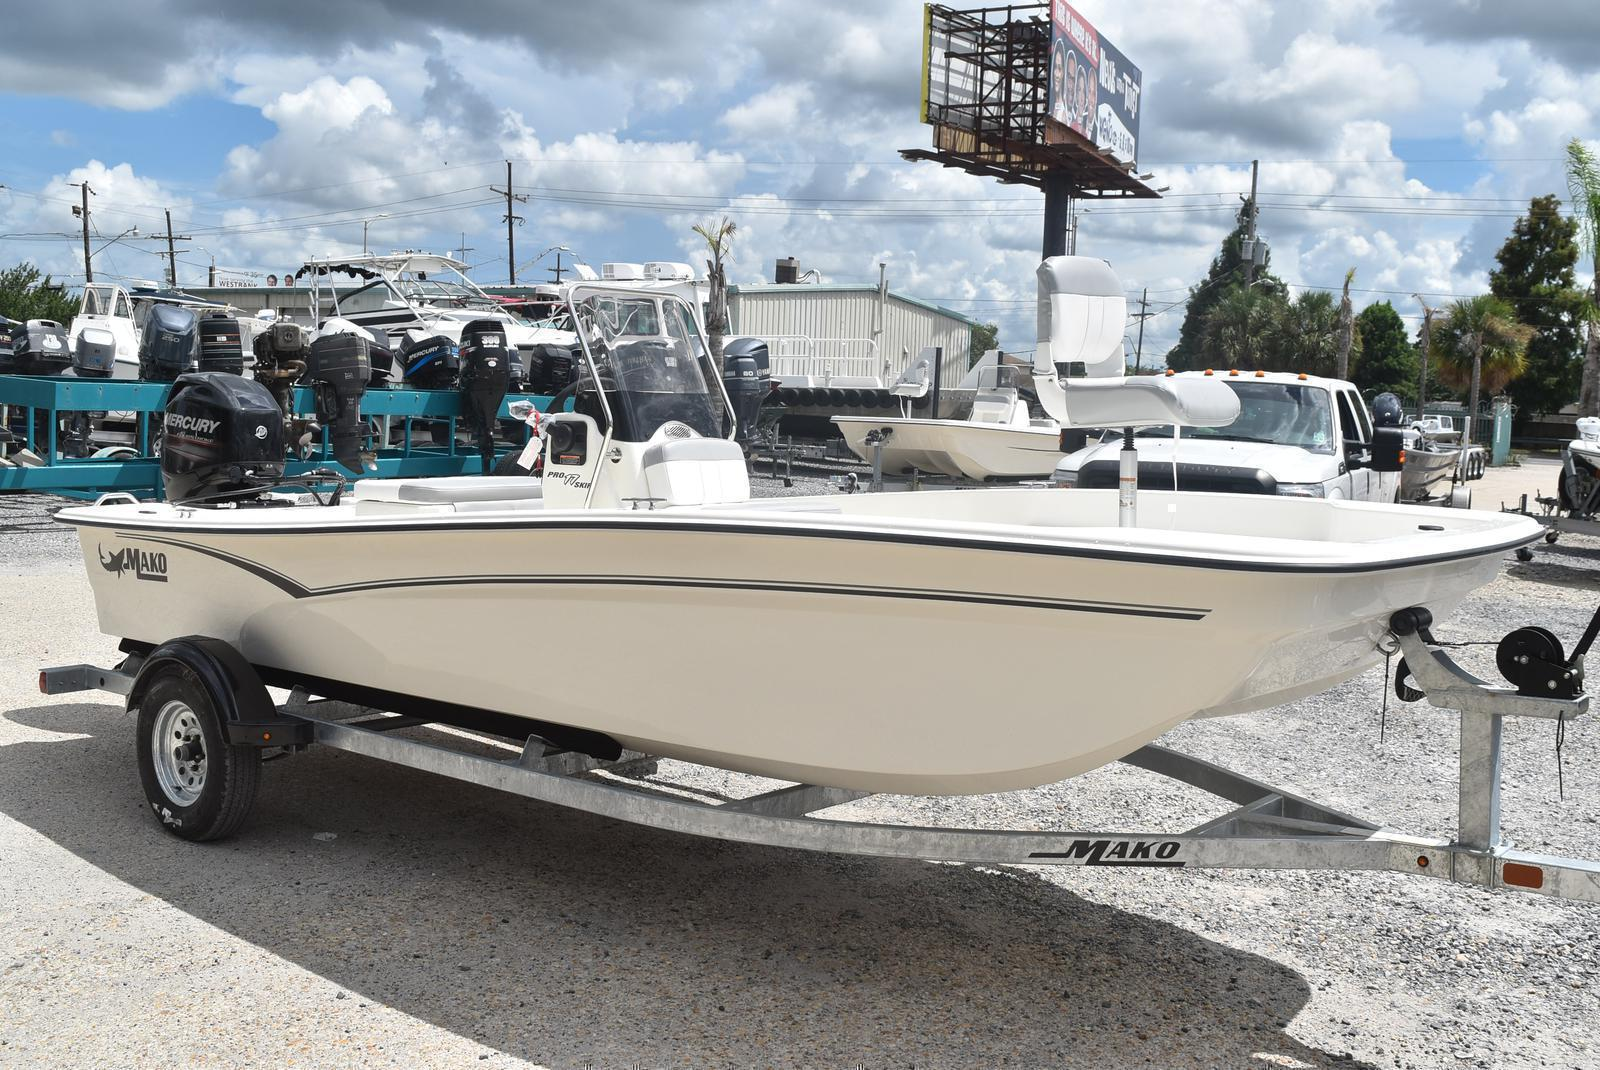 2020 Mako boat for sale, model of the boat is Pro Skiff 17, 75 ELPT & Image # 673 of 702